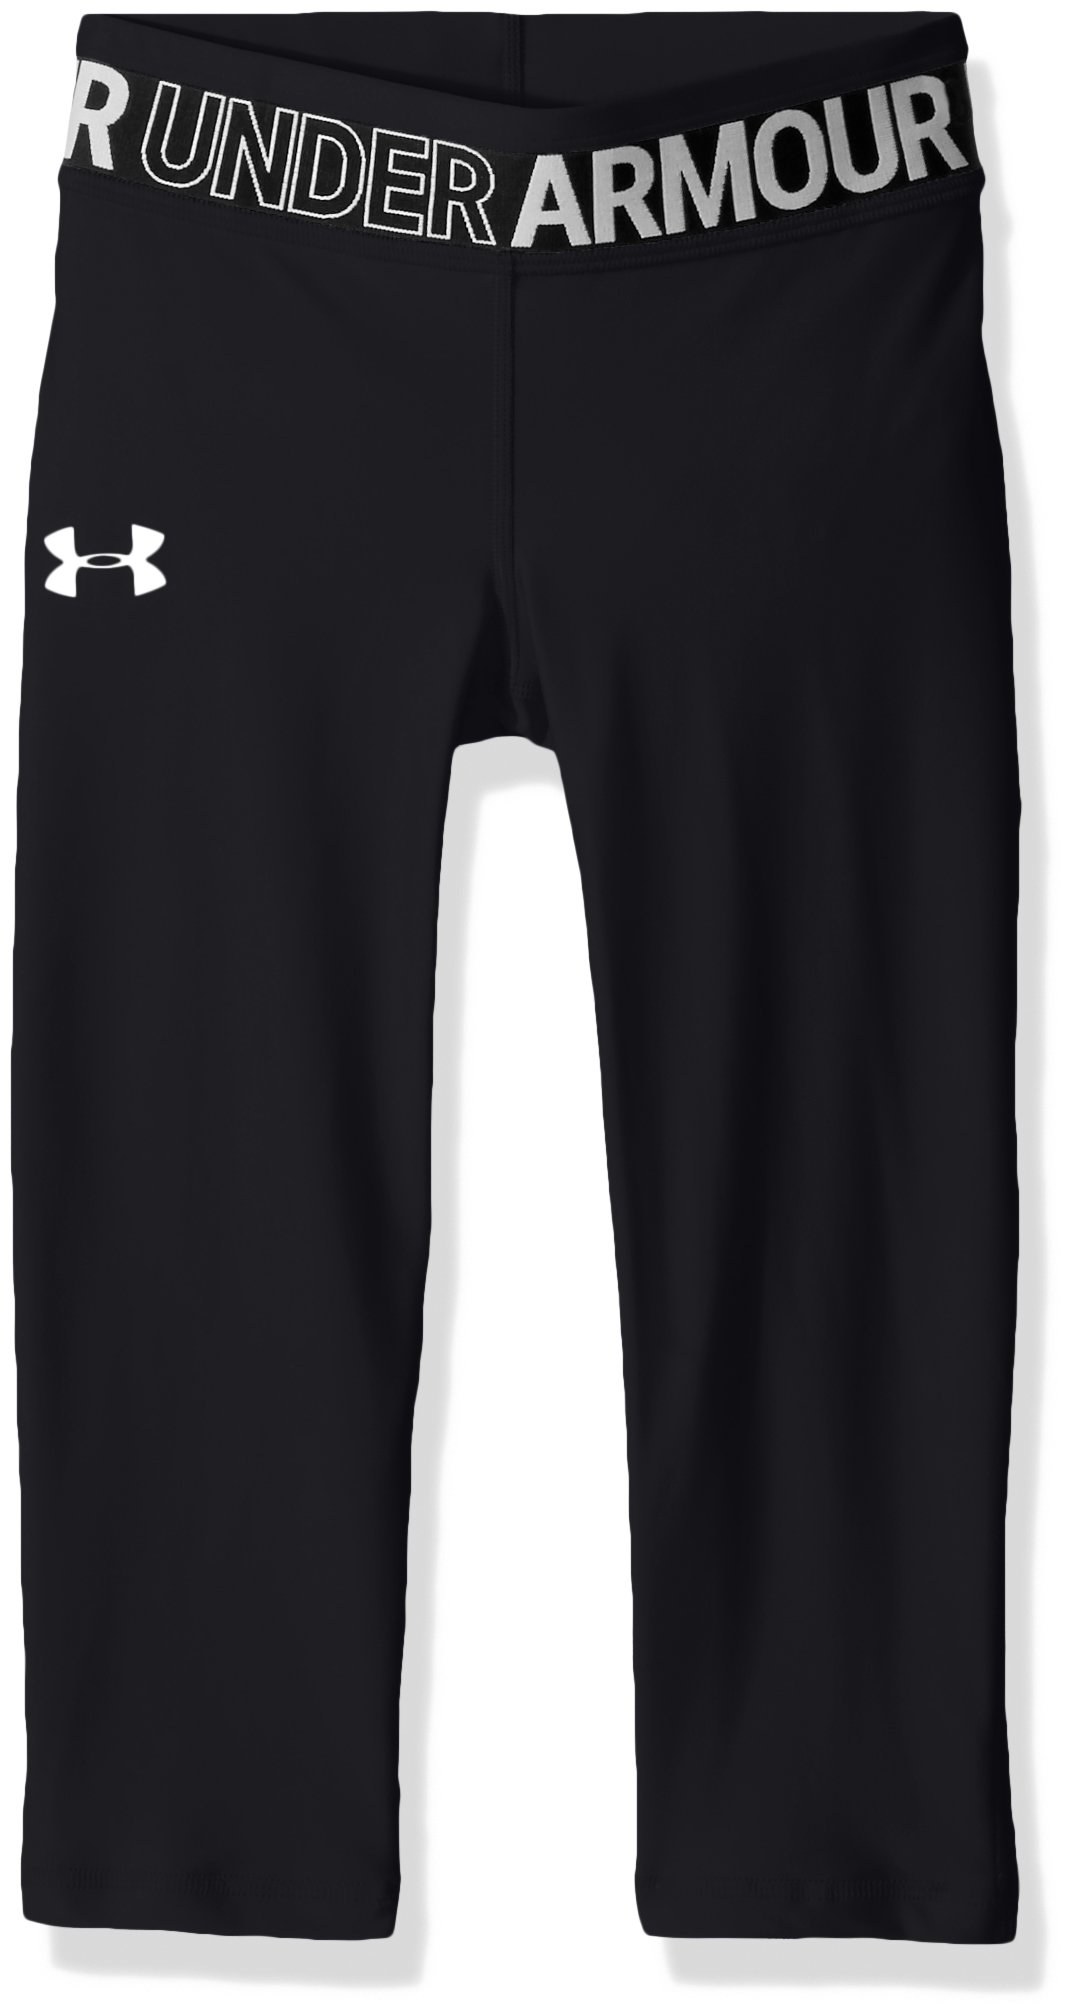 Under Armour Girls' HeatGear Armour Capris, Black /White, Youth X-Small